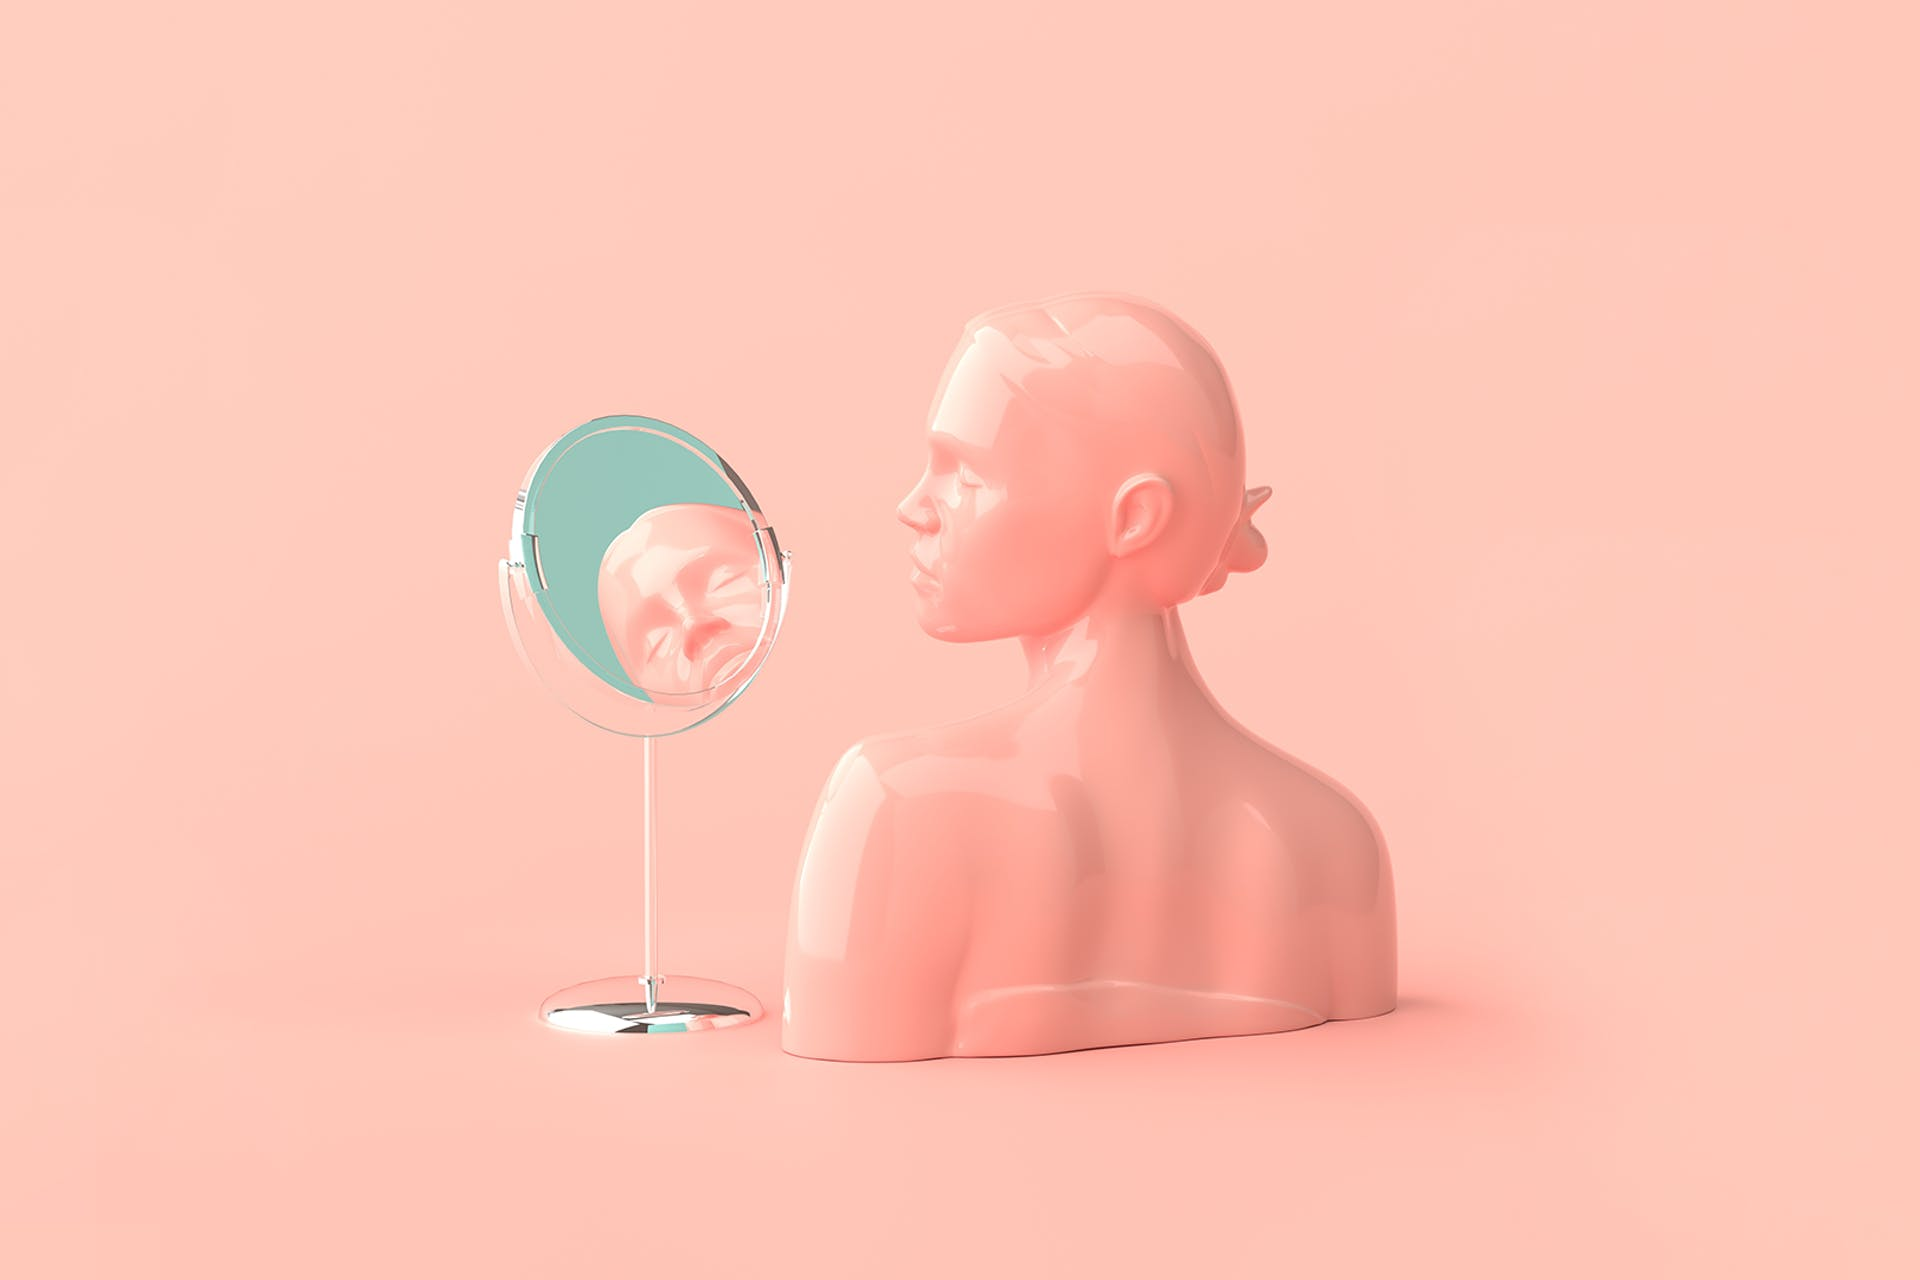 pink mannequin woman looking into mirror